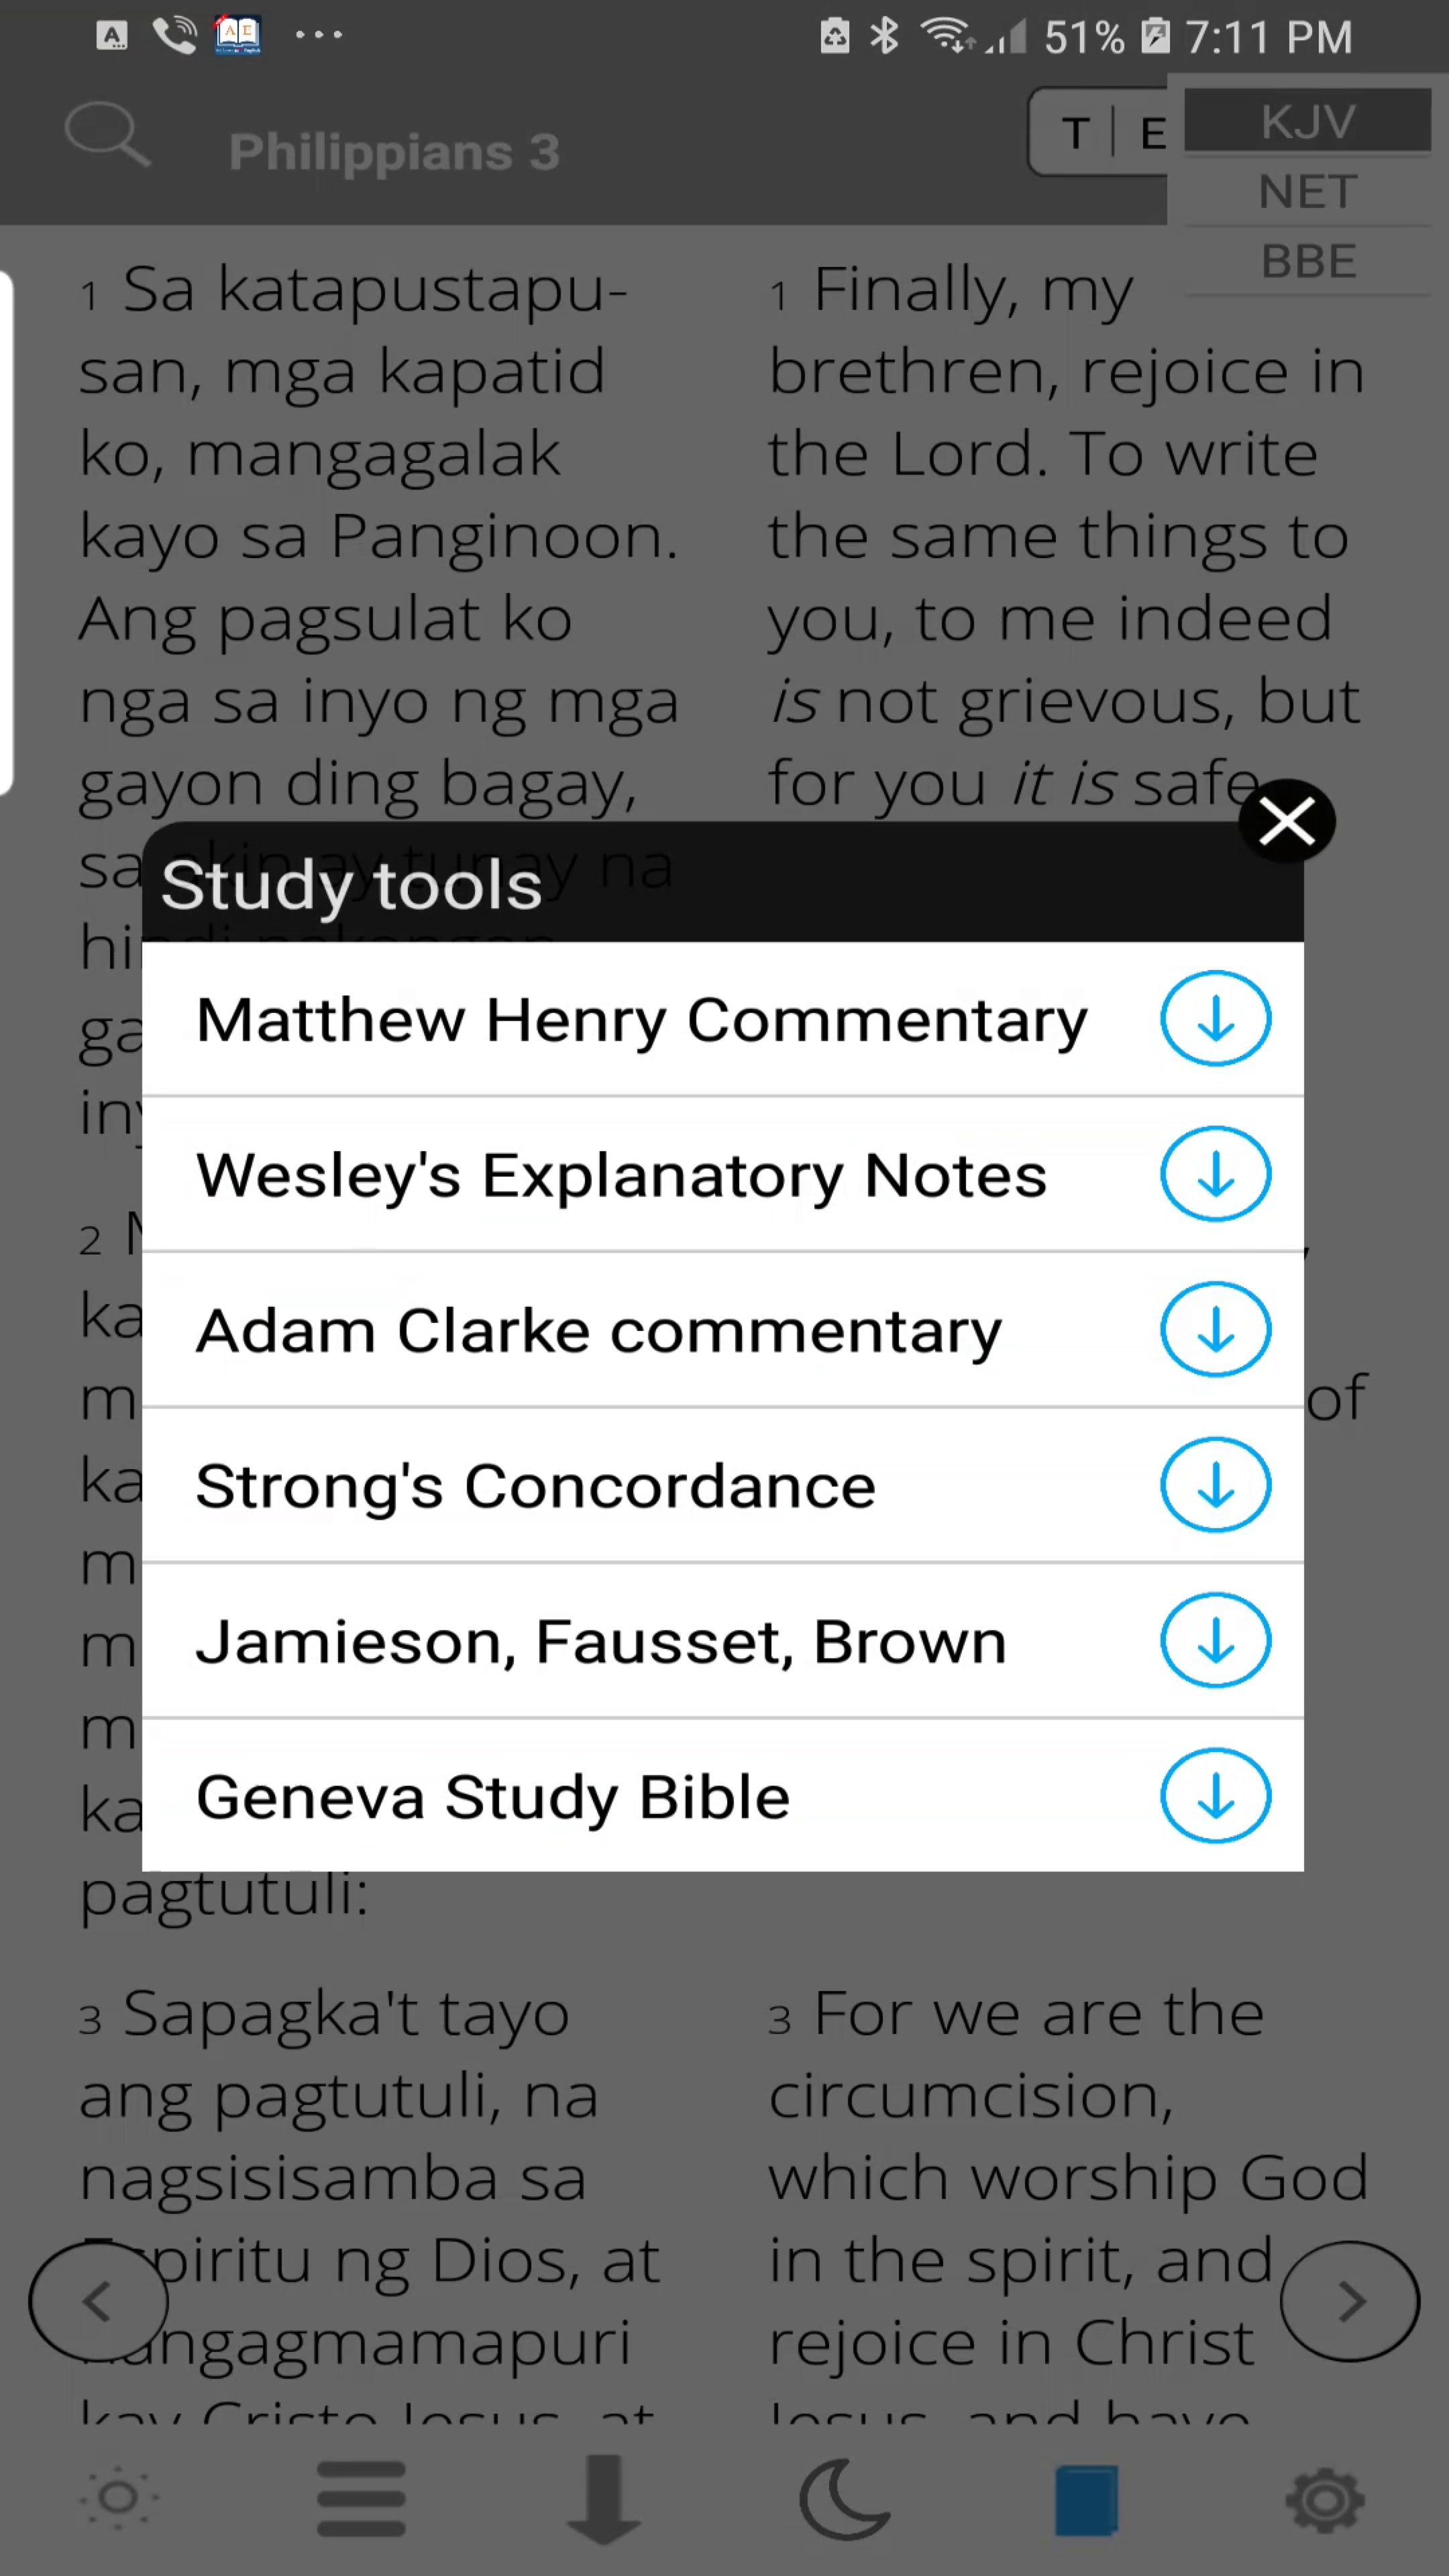 Tagalog Bible for Android - APK Download